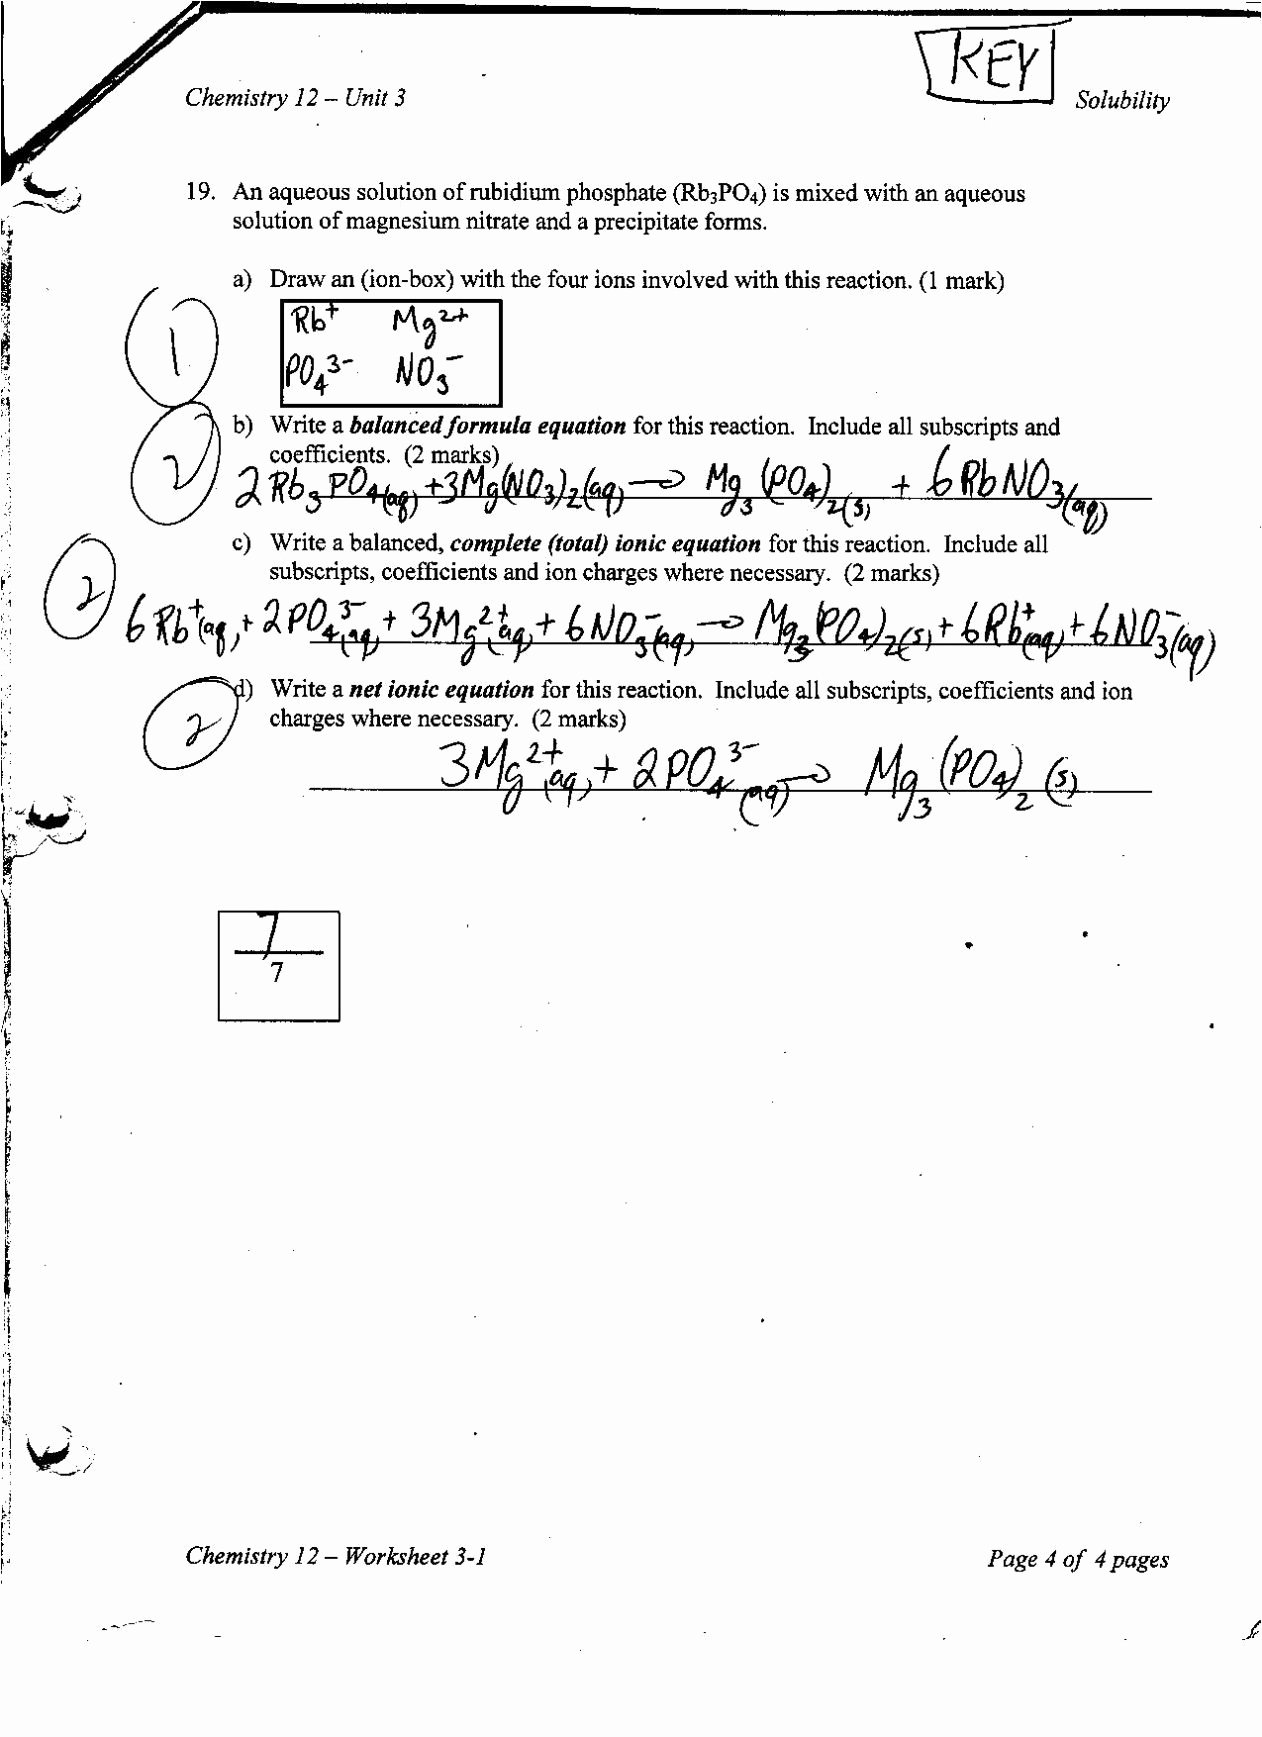 I Have Rights Worksheet Answers Unique Chemistry Unit 6 Worksheet 1 Answer Key